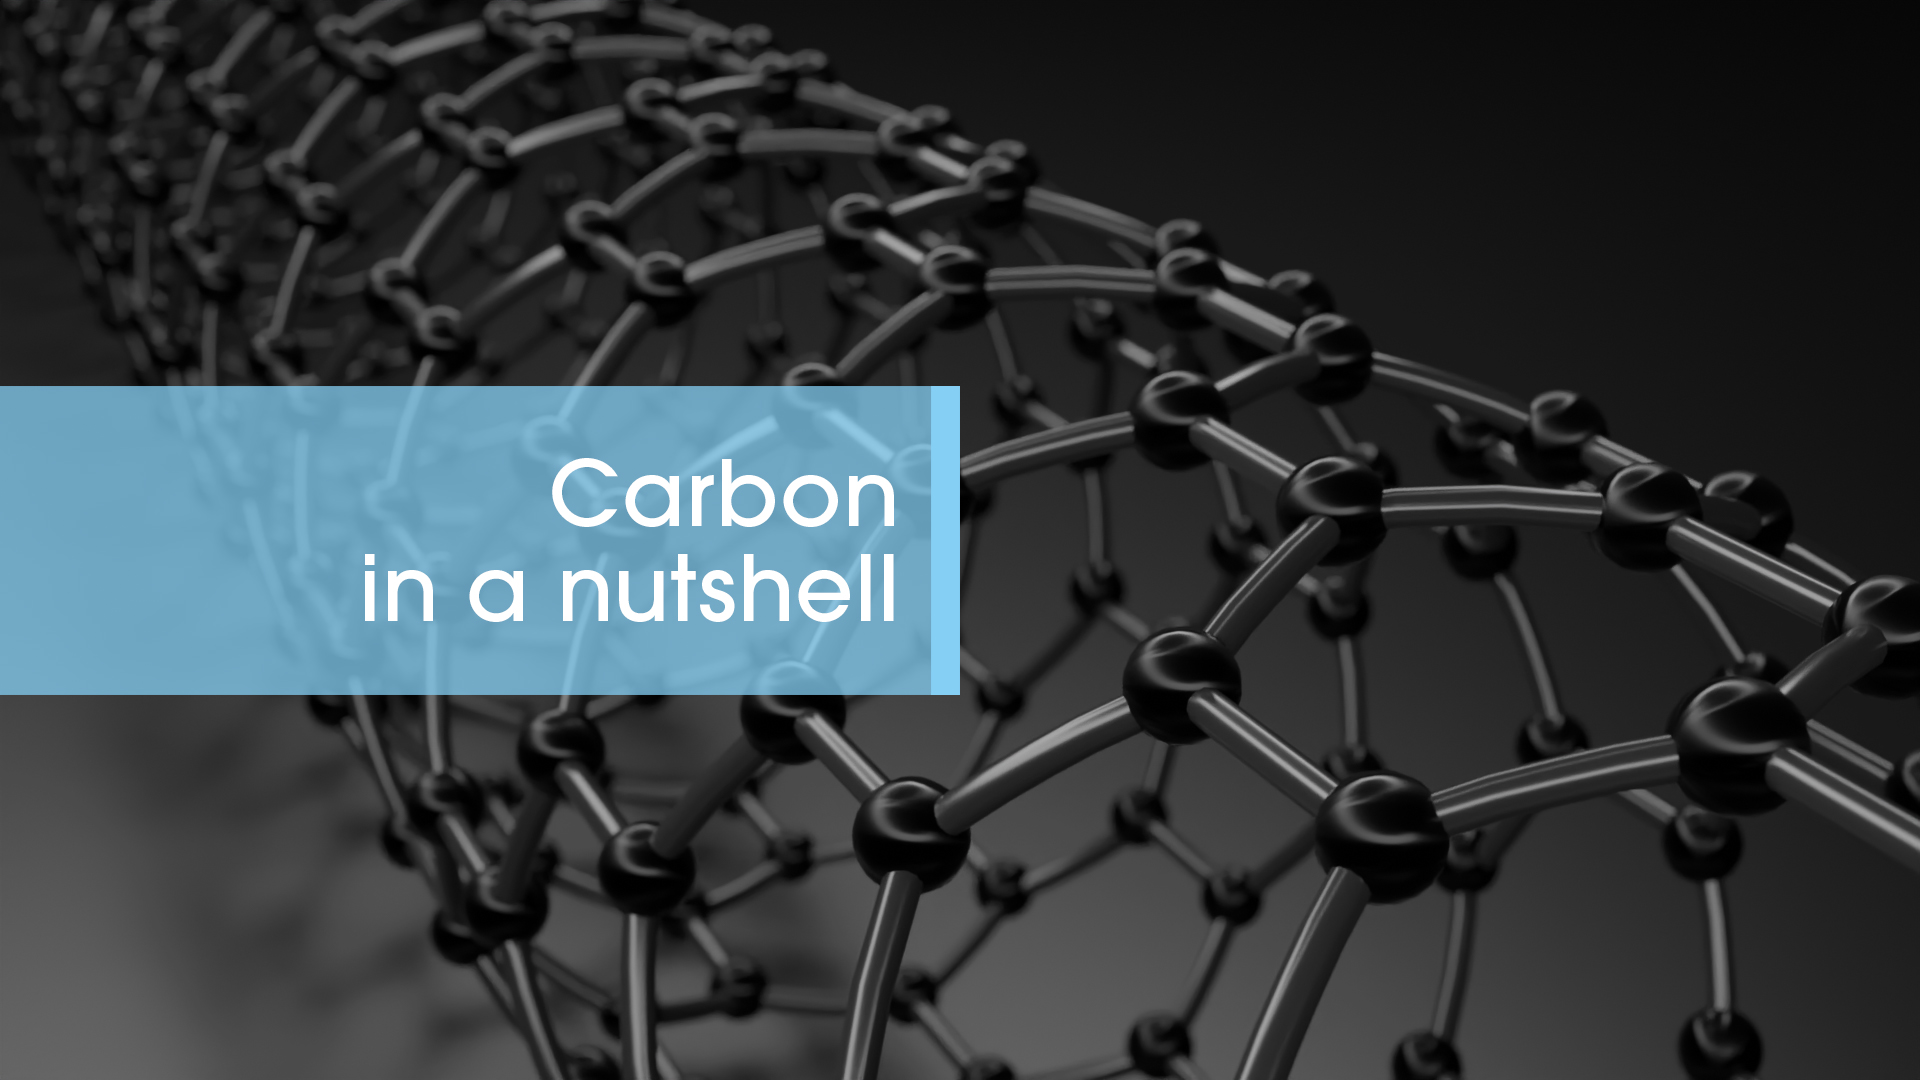 Carbon in a nutshell